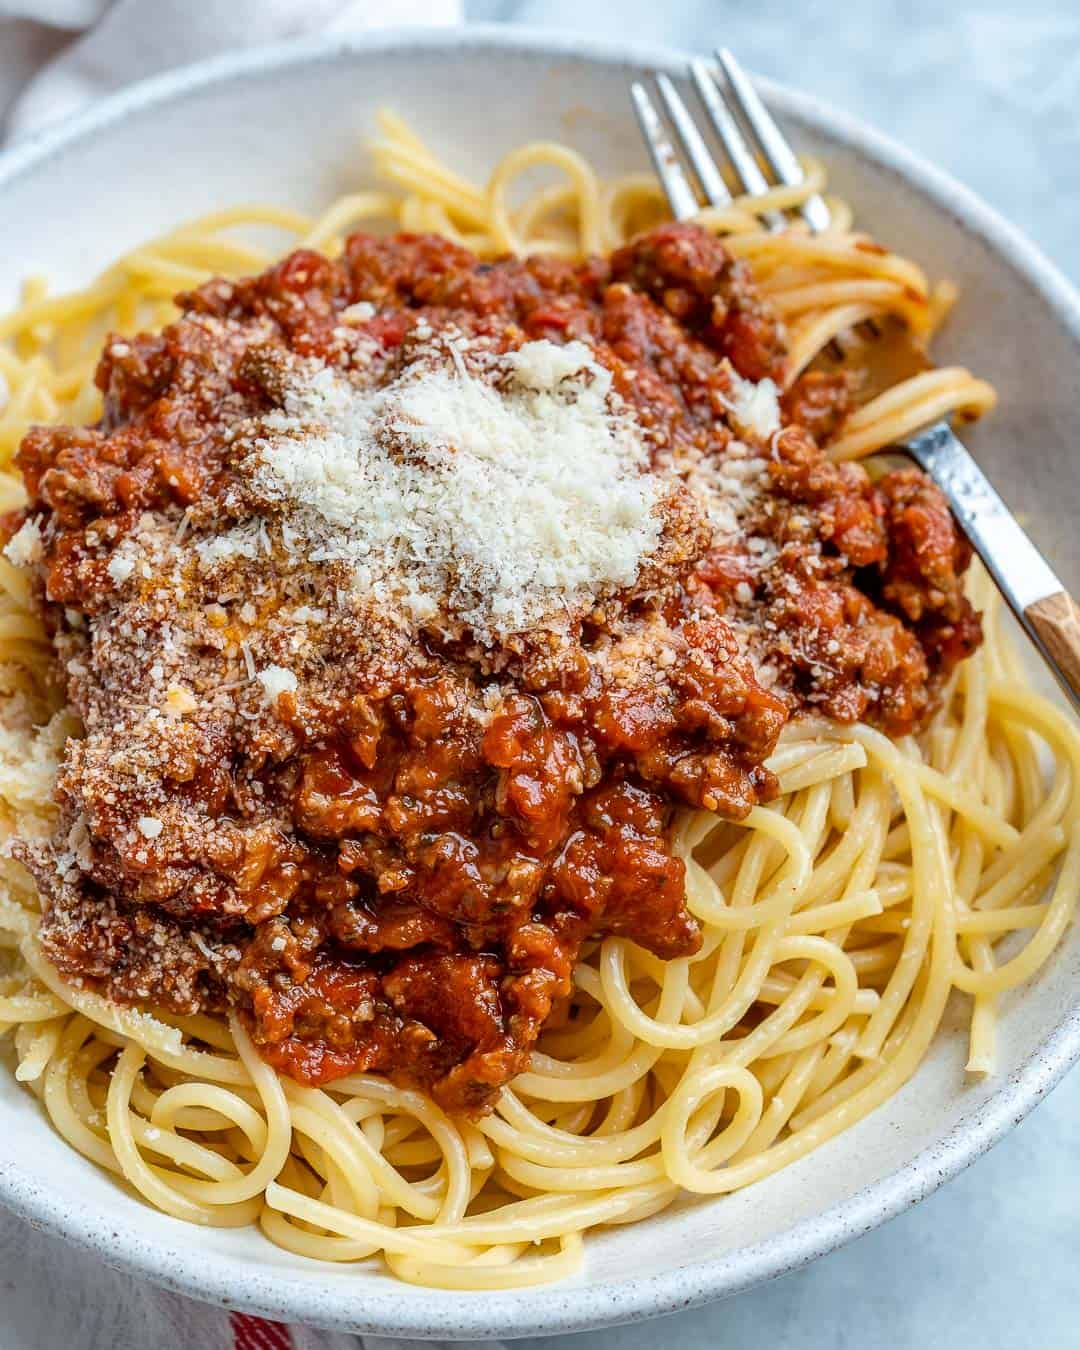 Homemade Meat Sauce served over cooked spaghetti with parmesan cheese on top